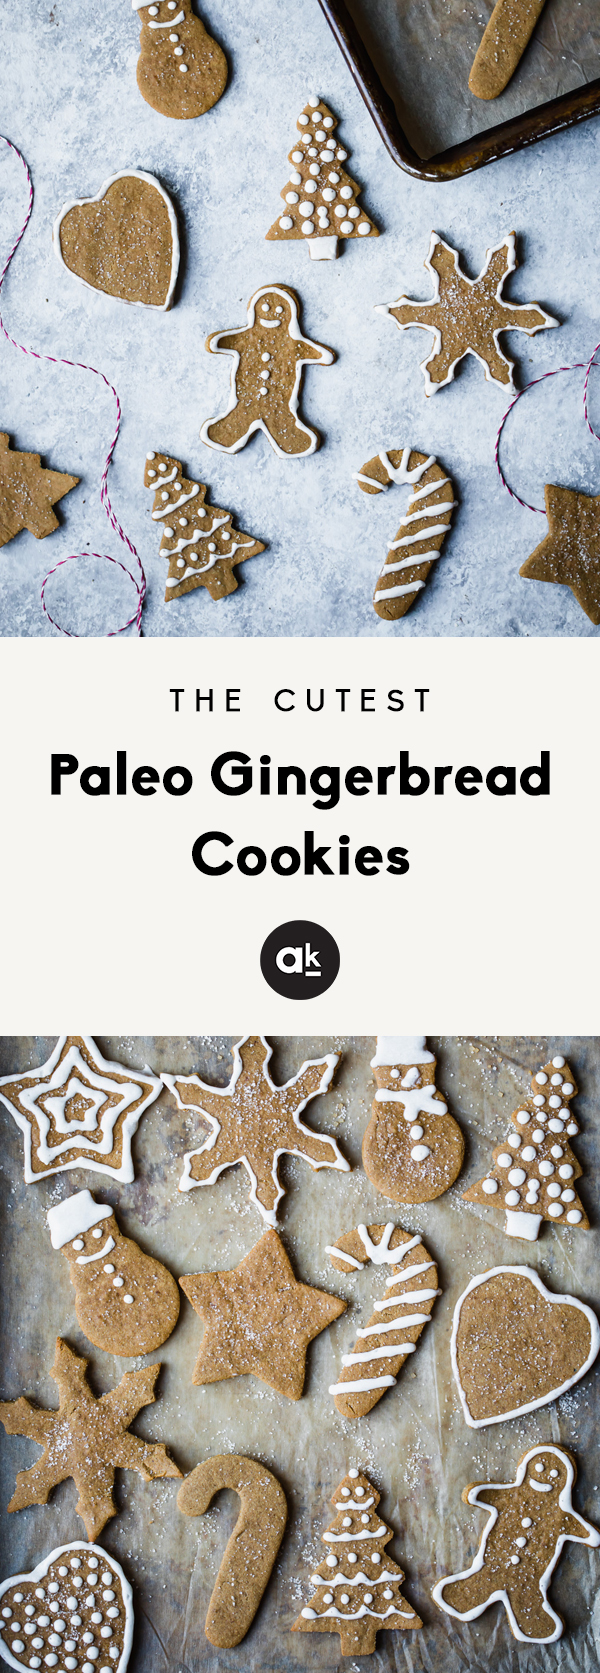 Adorable paleo gingerbread cookies made with coconut and almond flour. These grain free and gluten free cookies are the perfect treat for the holidays!